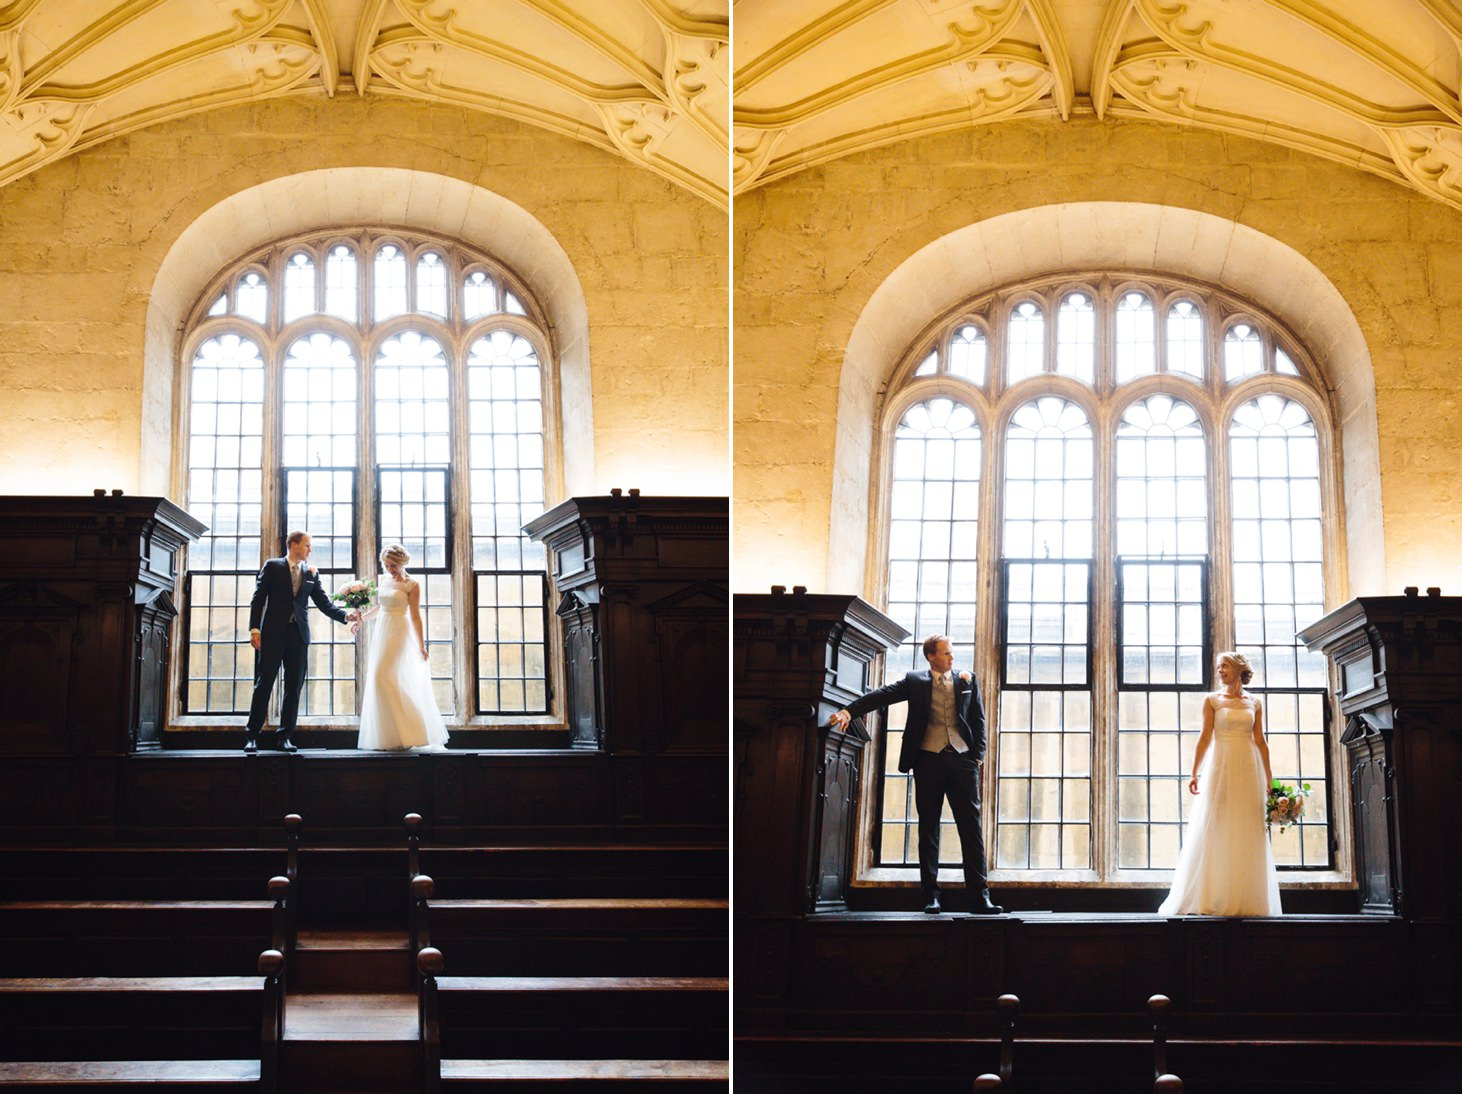 Bodleian library wedding bride and groom inside library